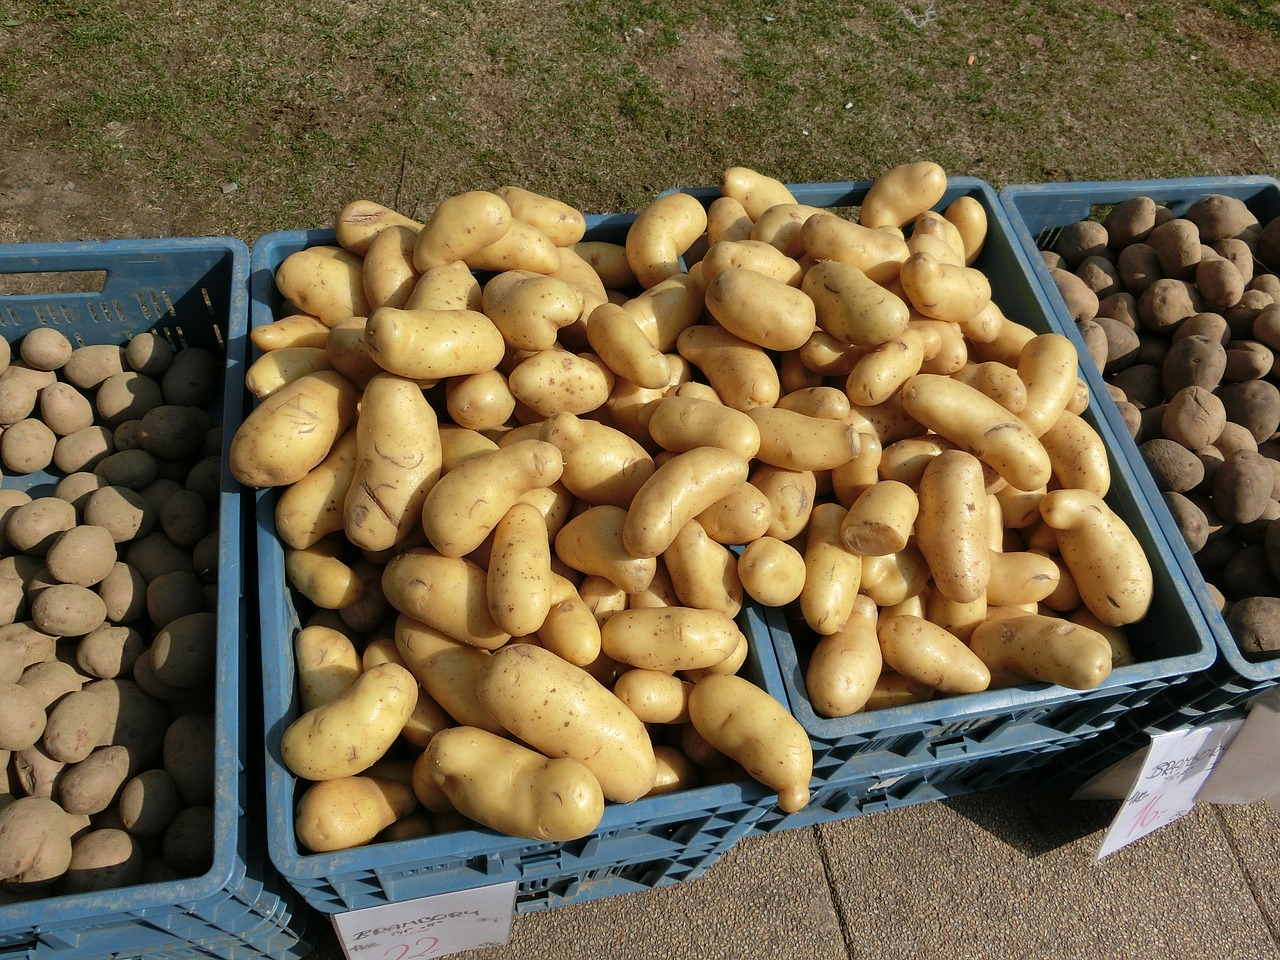 potatoes-377531_1280